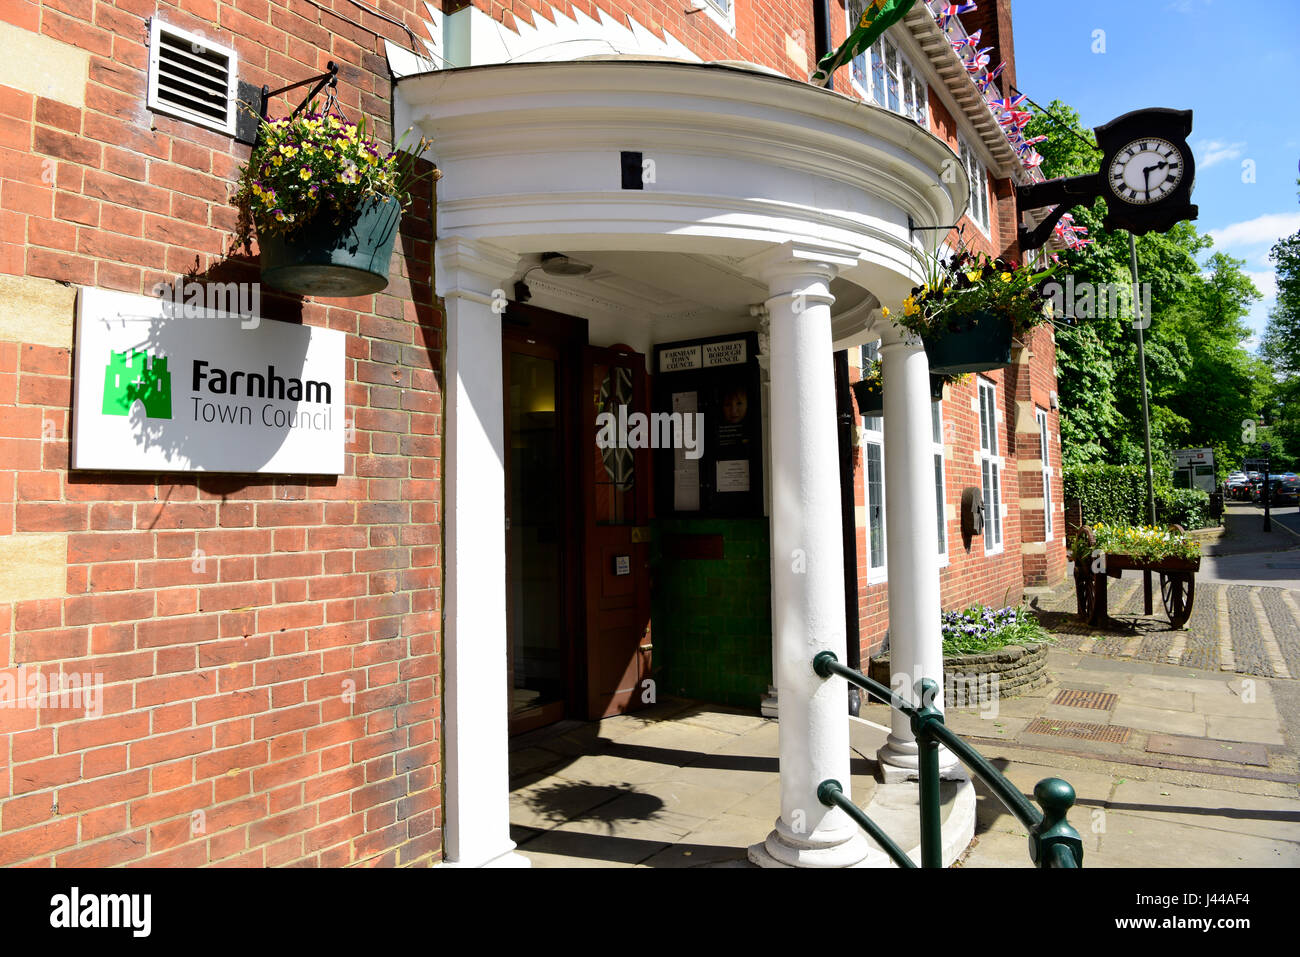 Facade of Farnham Town Council building, Farnham, Surrey, UK. - Stock Image